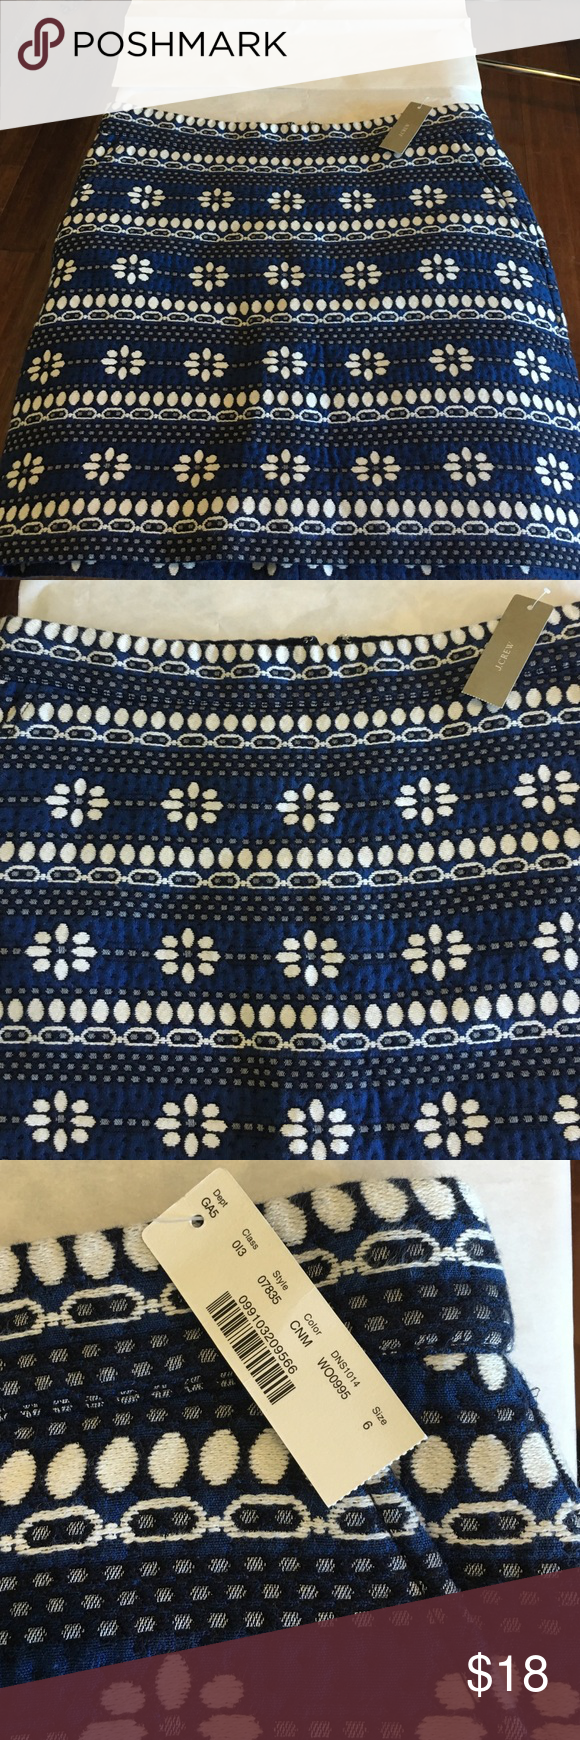 J. Crew Skirt NWT J. Crew Skirt. (Please note that the price tag has been removed). Size 6. Print colors are blue/white/black. Fully lined. 80% cotton/20% polyester. Side Pockets. Waist measures approximately 16 inches lying flat//17 inches in length. Please ask all questions before making an offer or purchase. Thanks for stopping by my closet! J. Crew Skirts